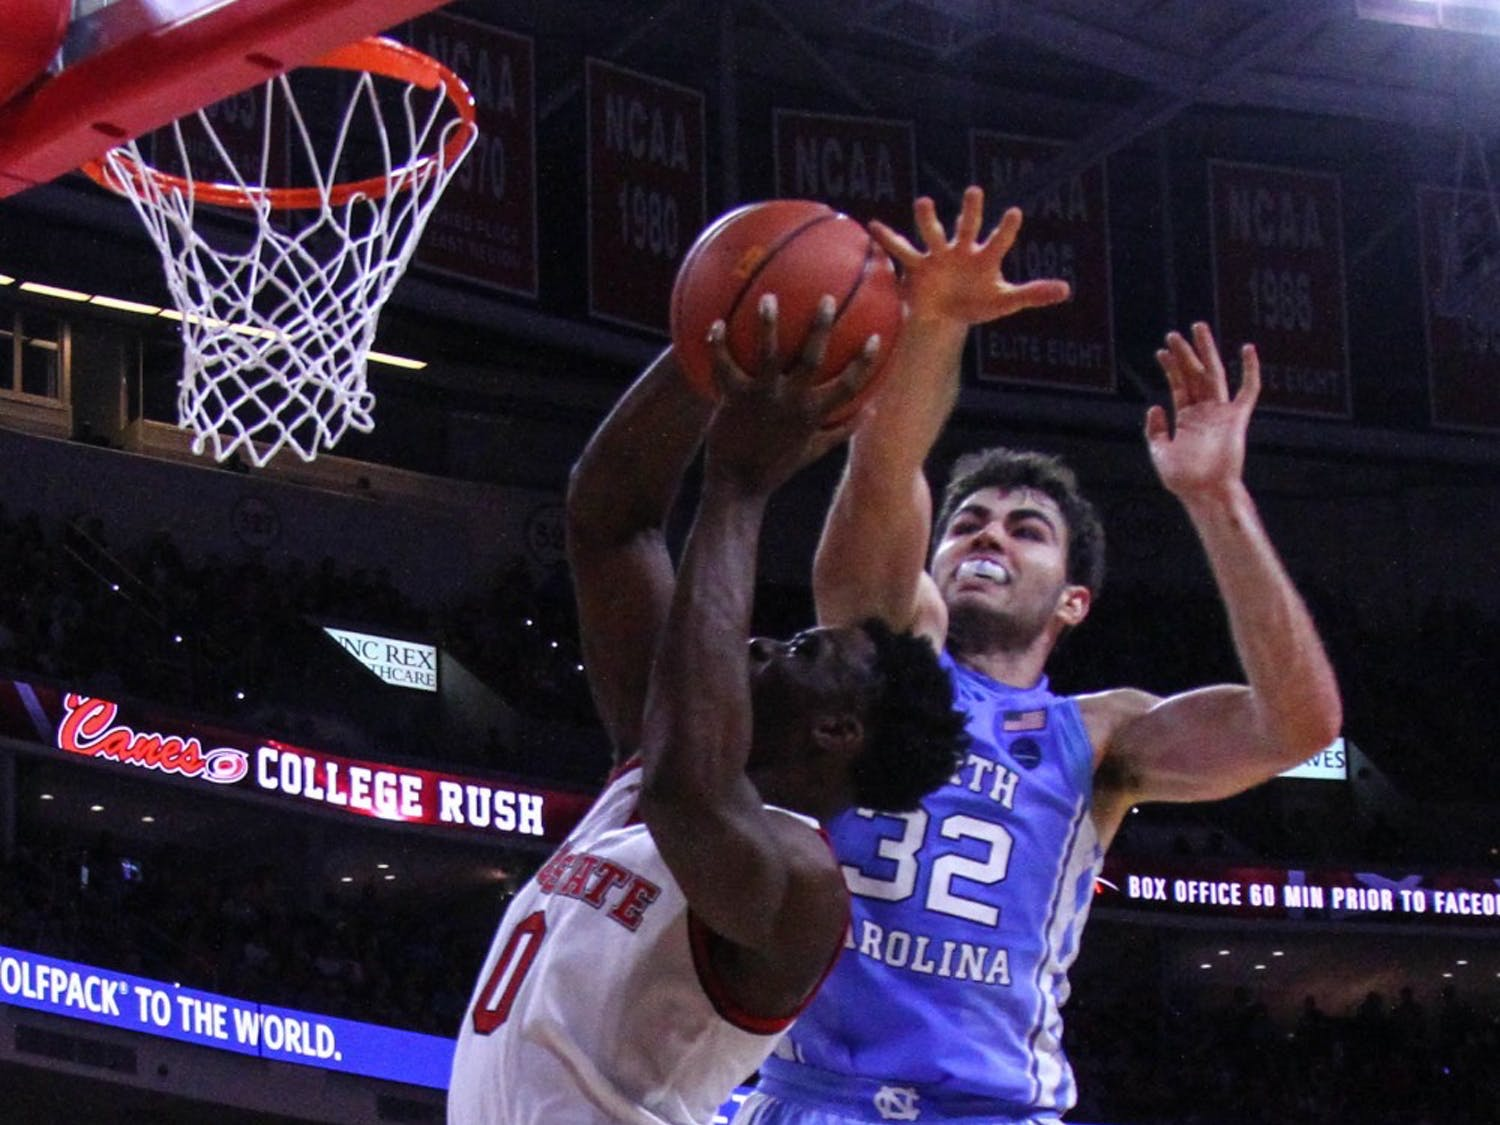 The North Carolina men's basketball team defeated N.C. State 97-73 in Raleigh Wednesday night.